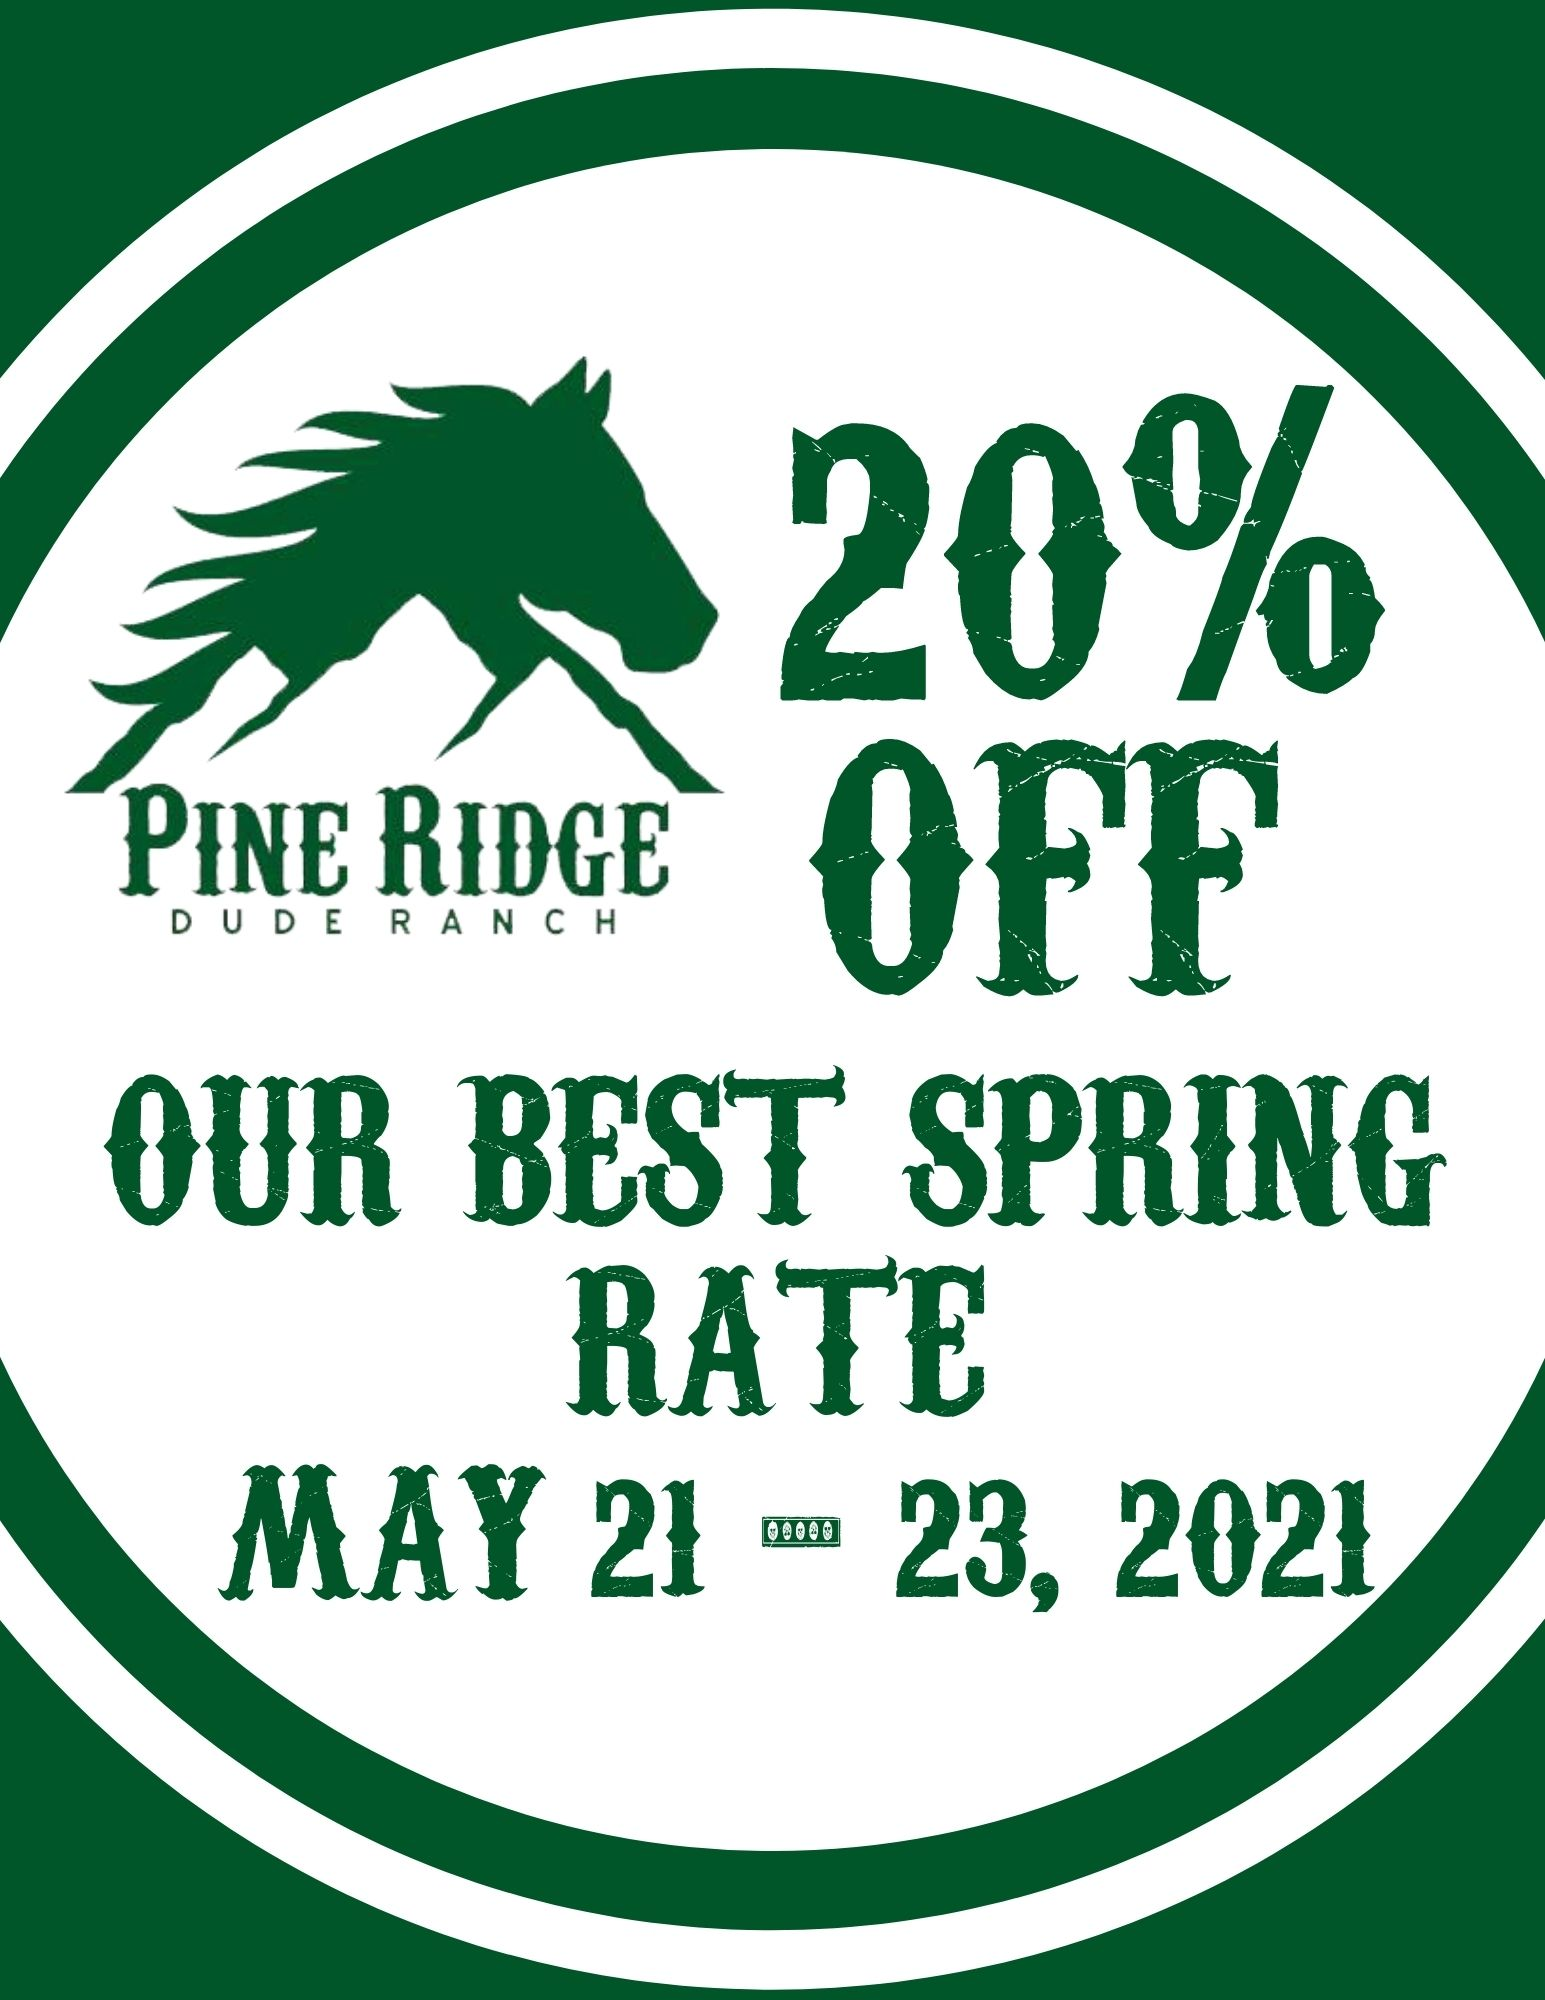 green circle with pine ridge dude ranch logo and 20% off our best spring rate, may 21-23,. 2021